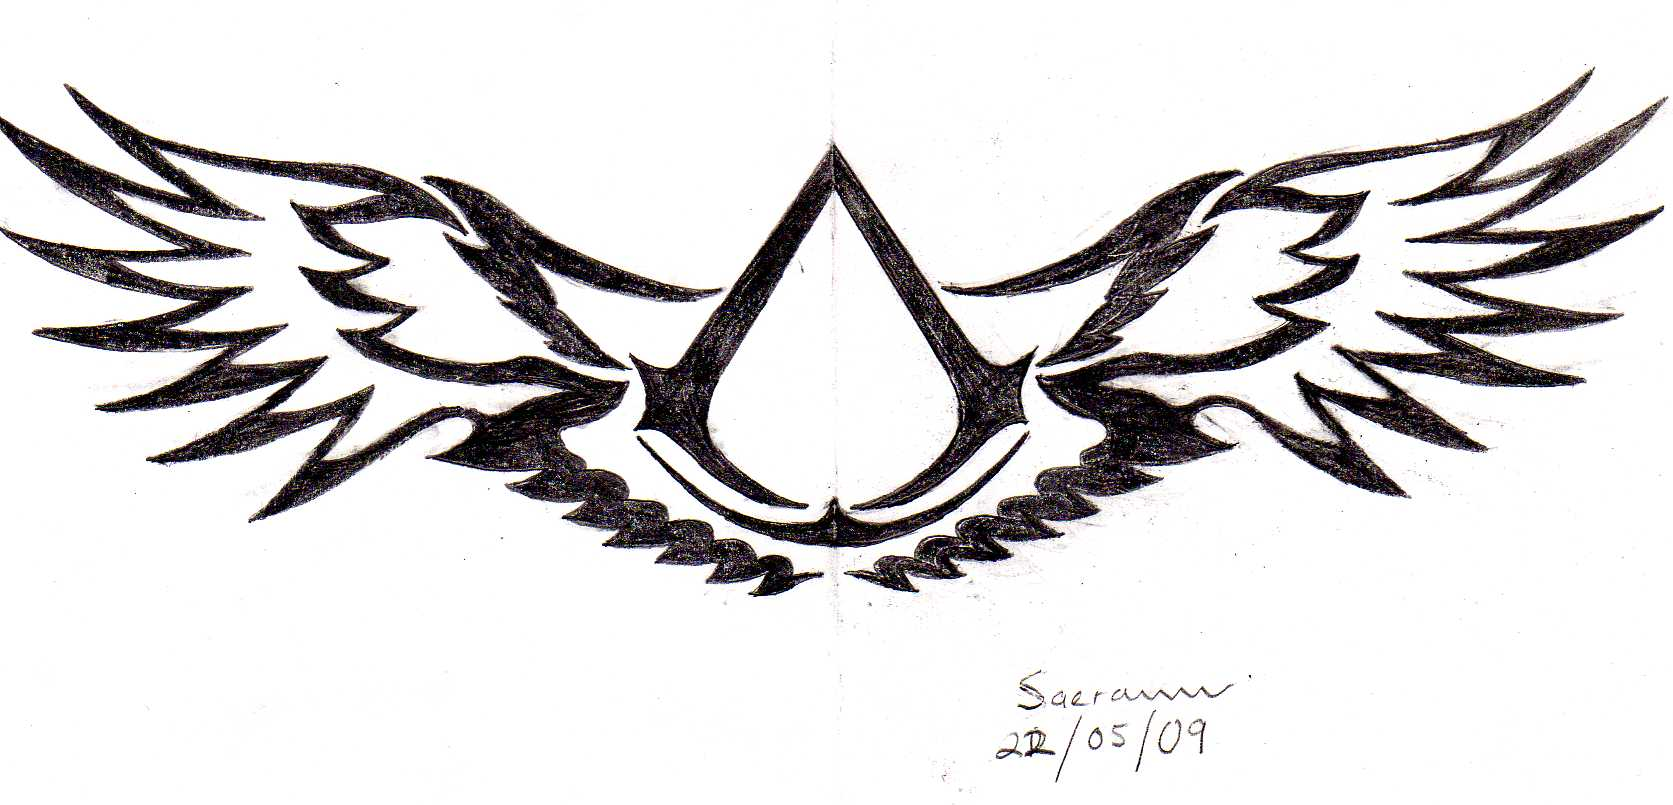 Assassin Creed Logo Tattoo Google Images On We Heart It